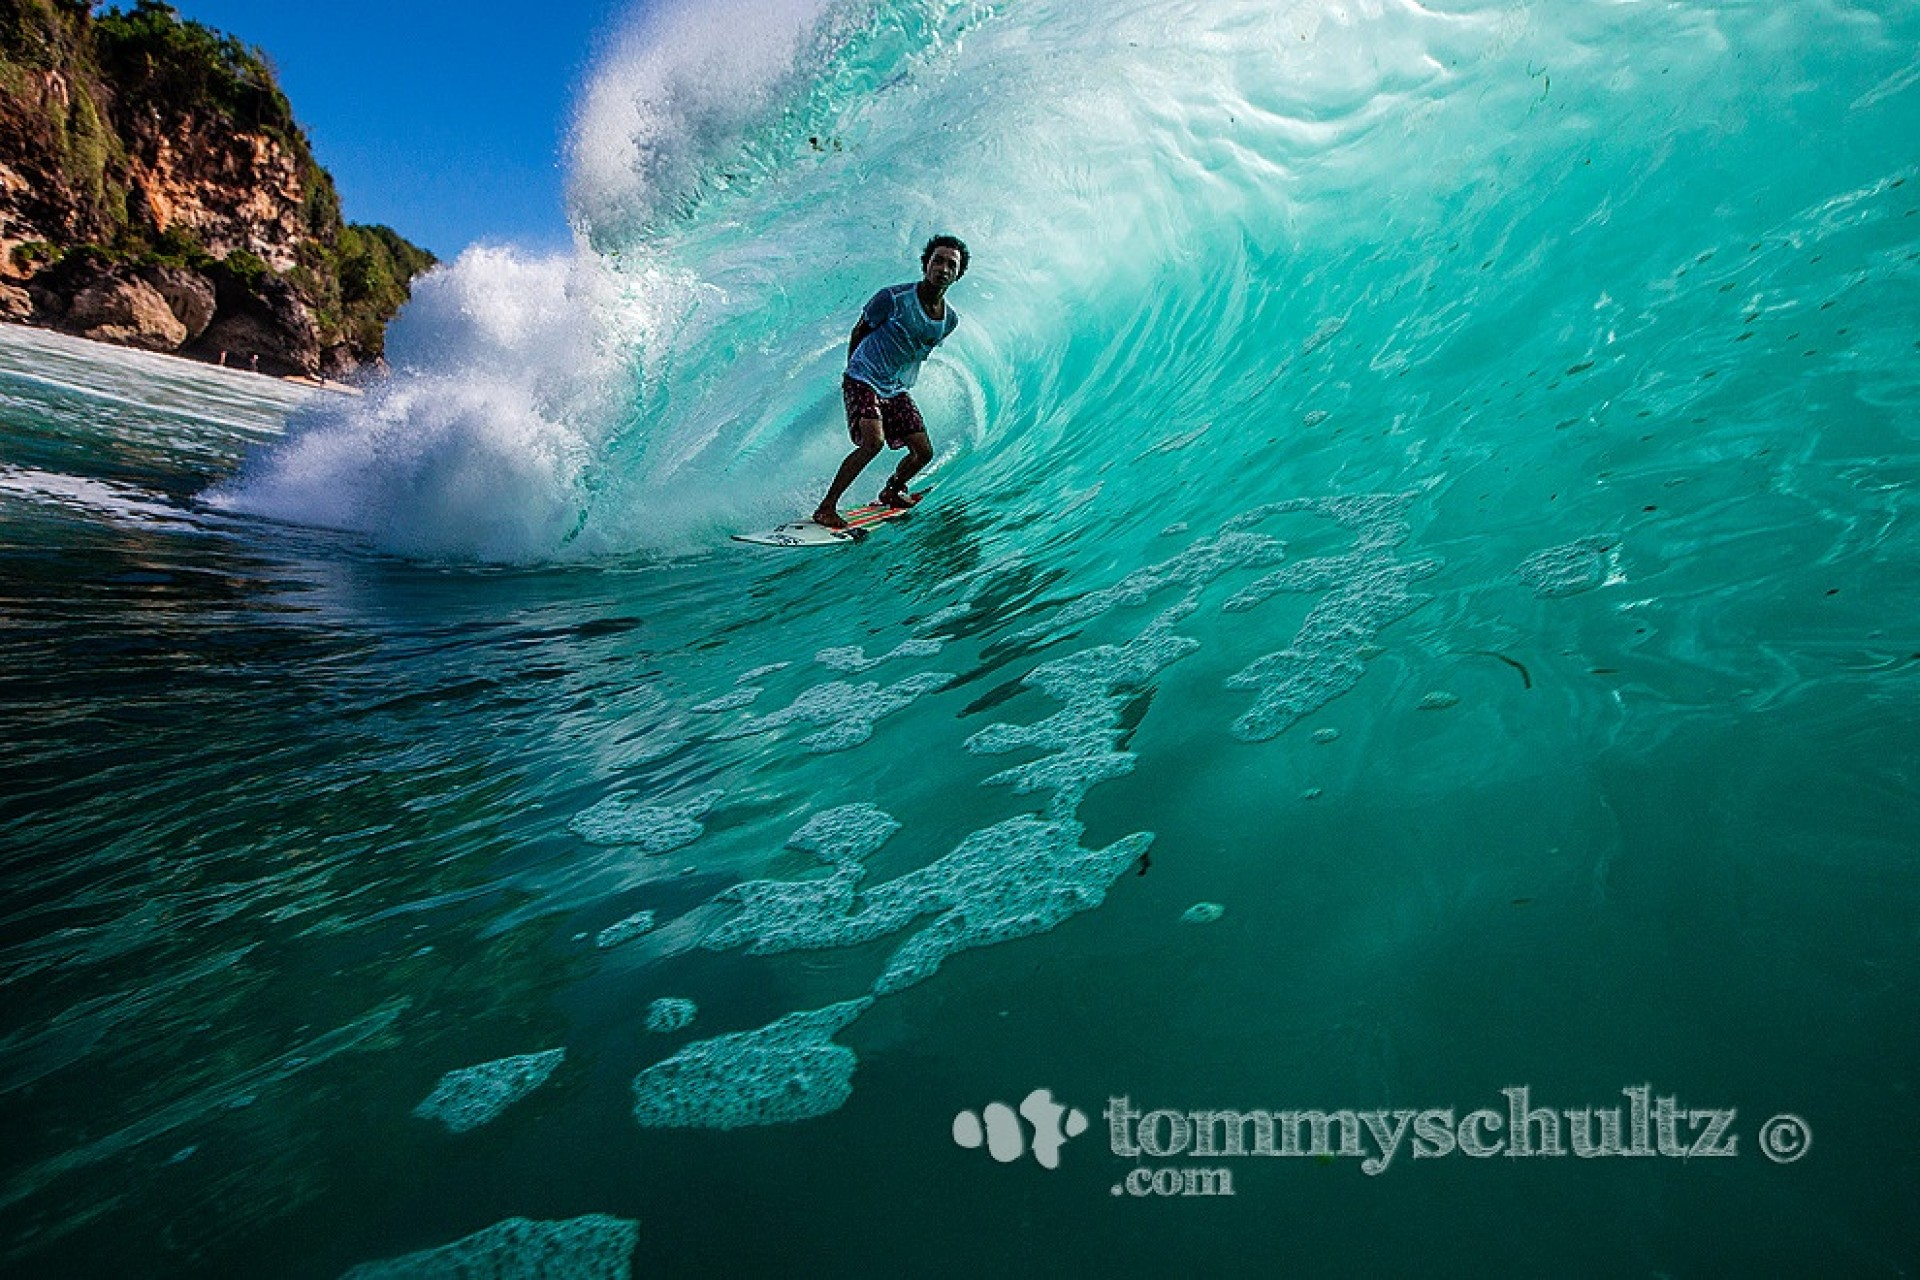 tommyschultz's photo of Padang Padang